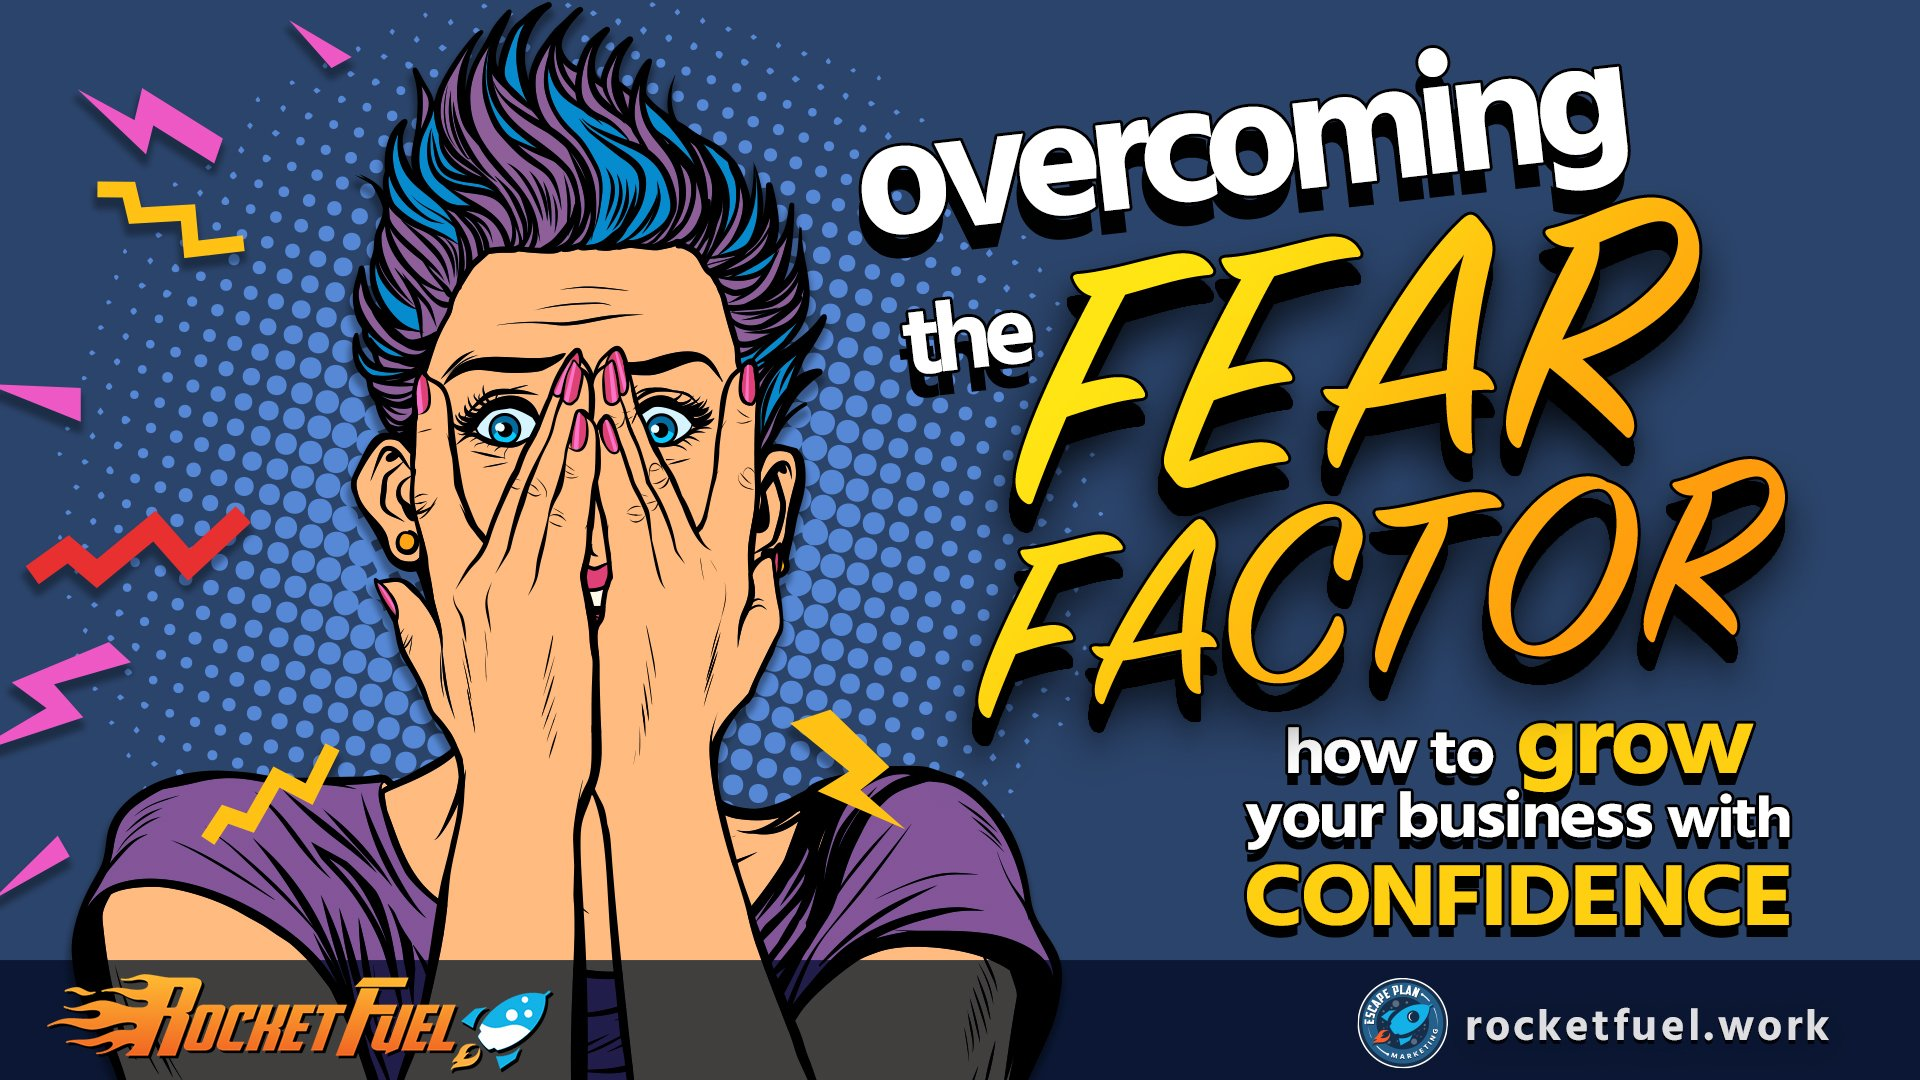 Overcoming Business Anxiety